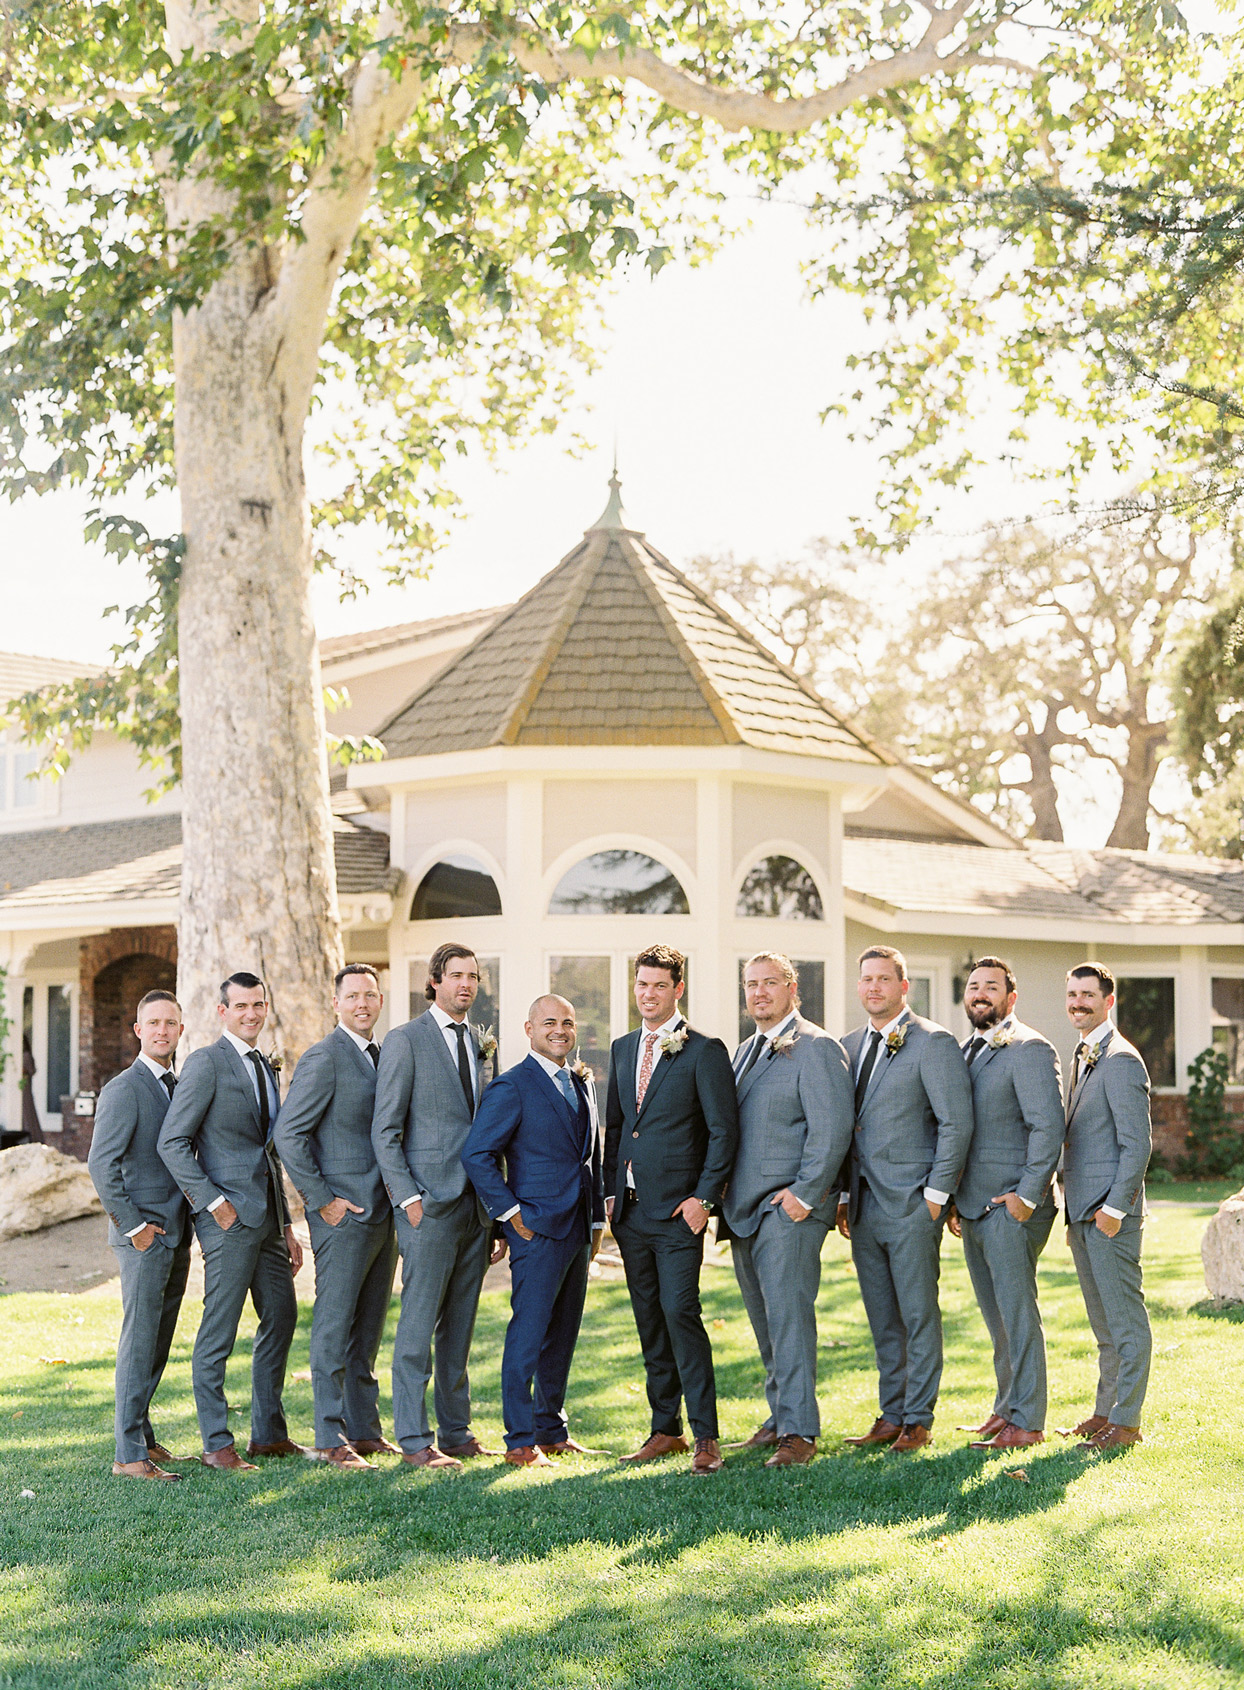 groom and groomsmen posing on lawn